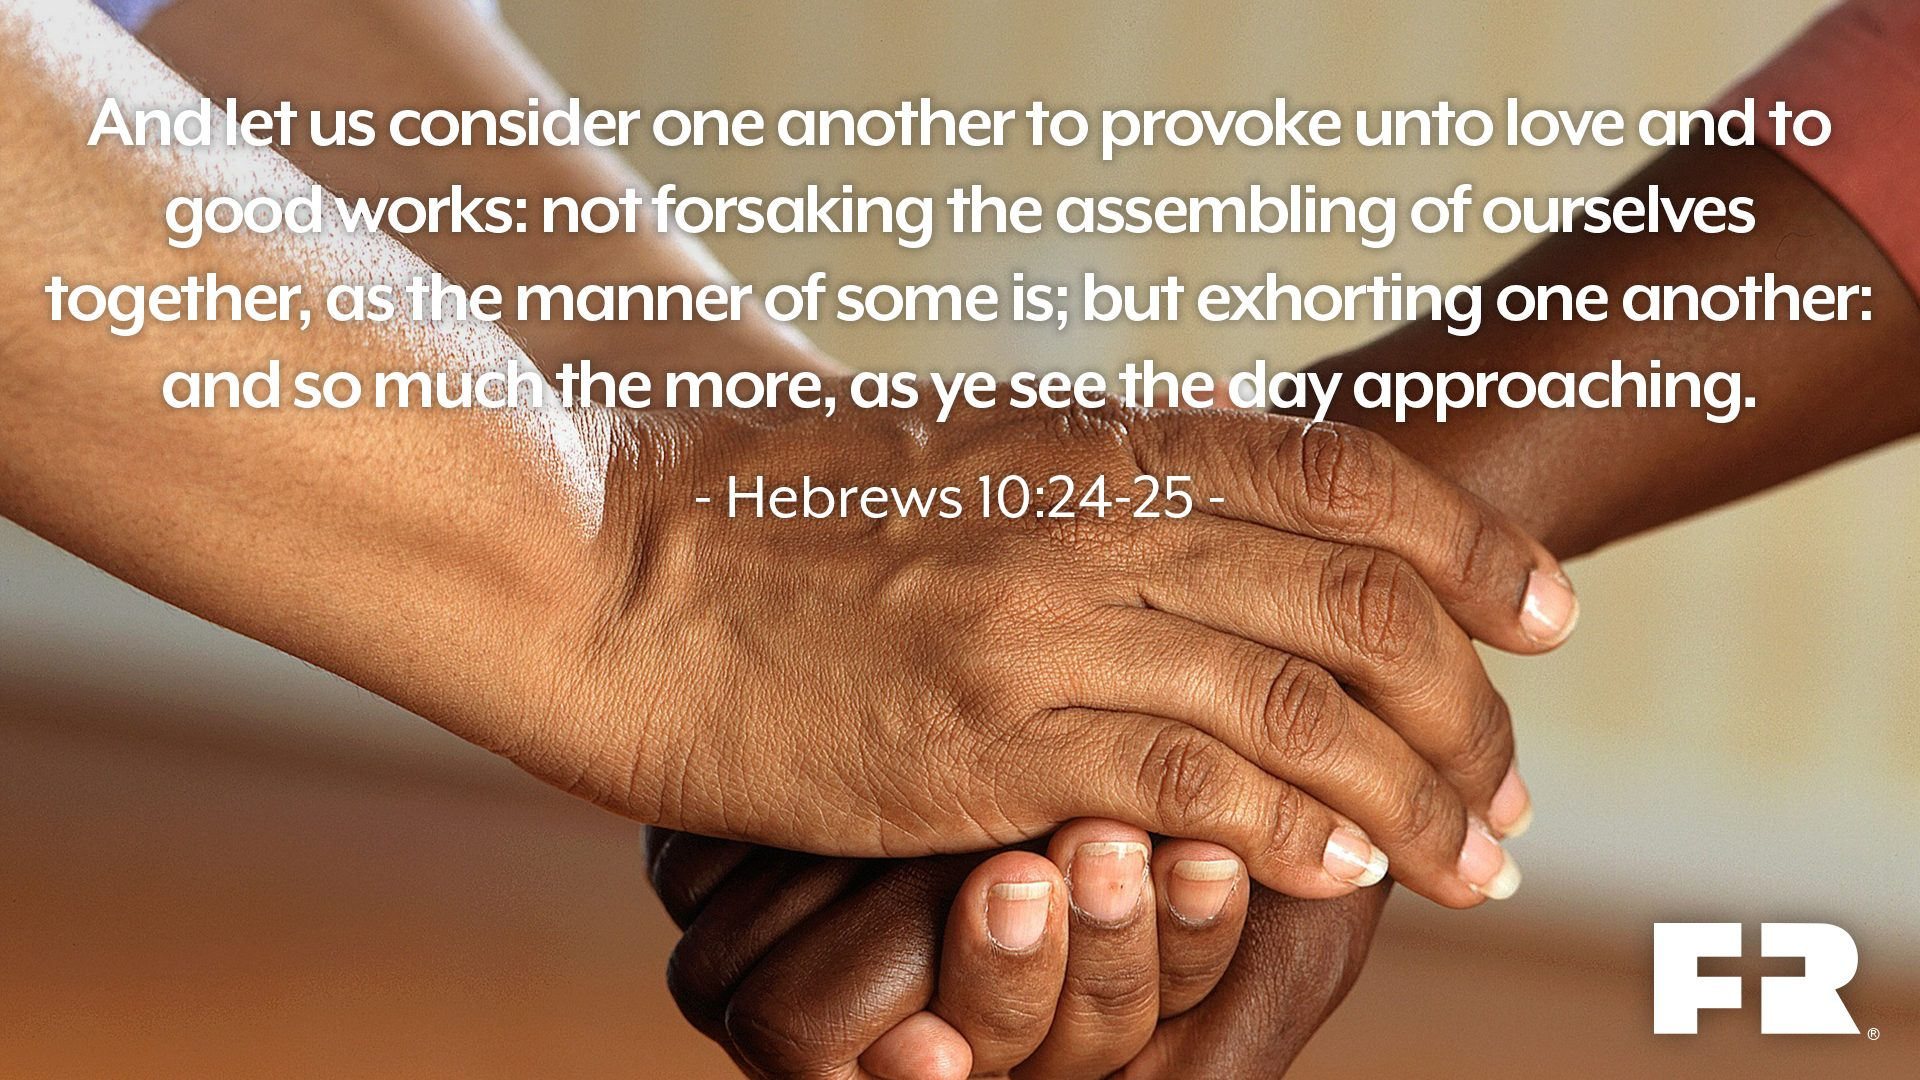 """And let us consider one another to provoke unto love and to good works:Not forsaking the assembling of ourselves together, as the manner of some is; but exhorting one another: and so much the more, as ye see the day approaching."""